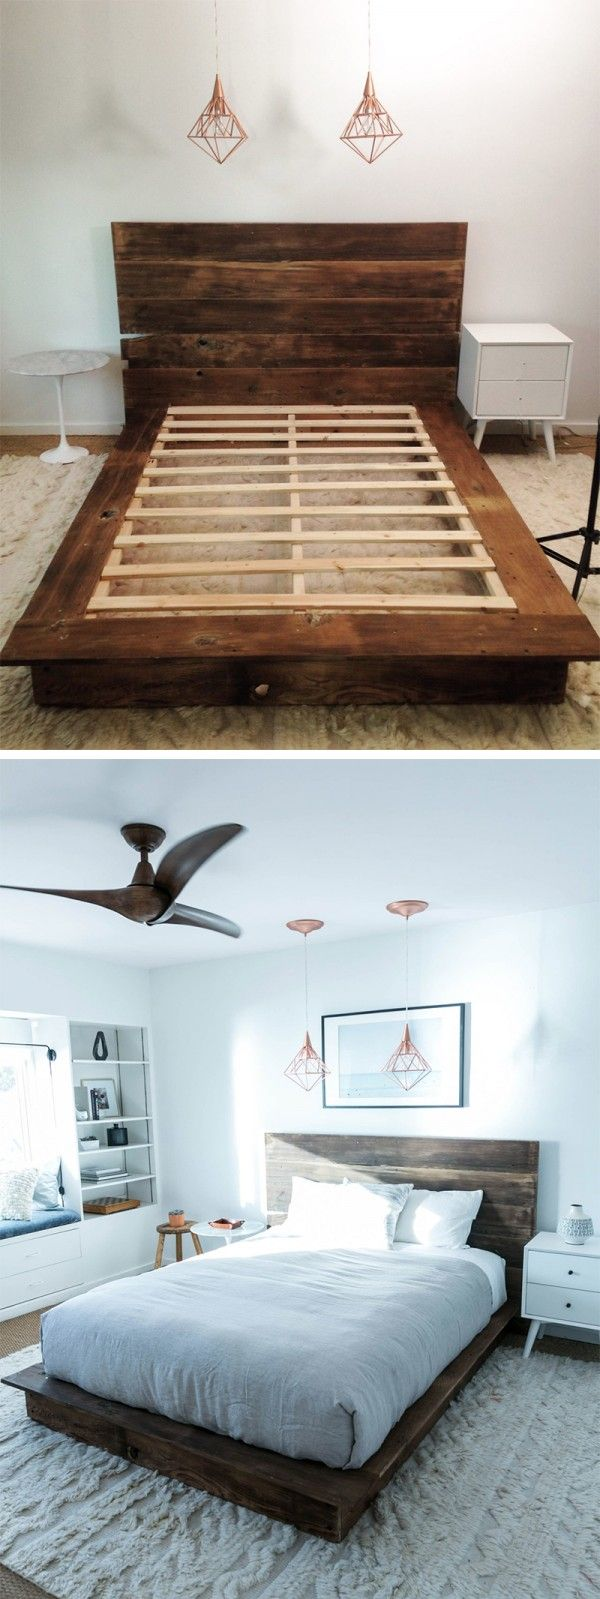 Wooden bed frame design - 20 Easy Diy Bed Frame Projects You Can Build Yourself